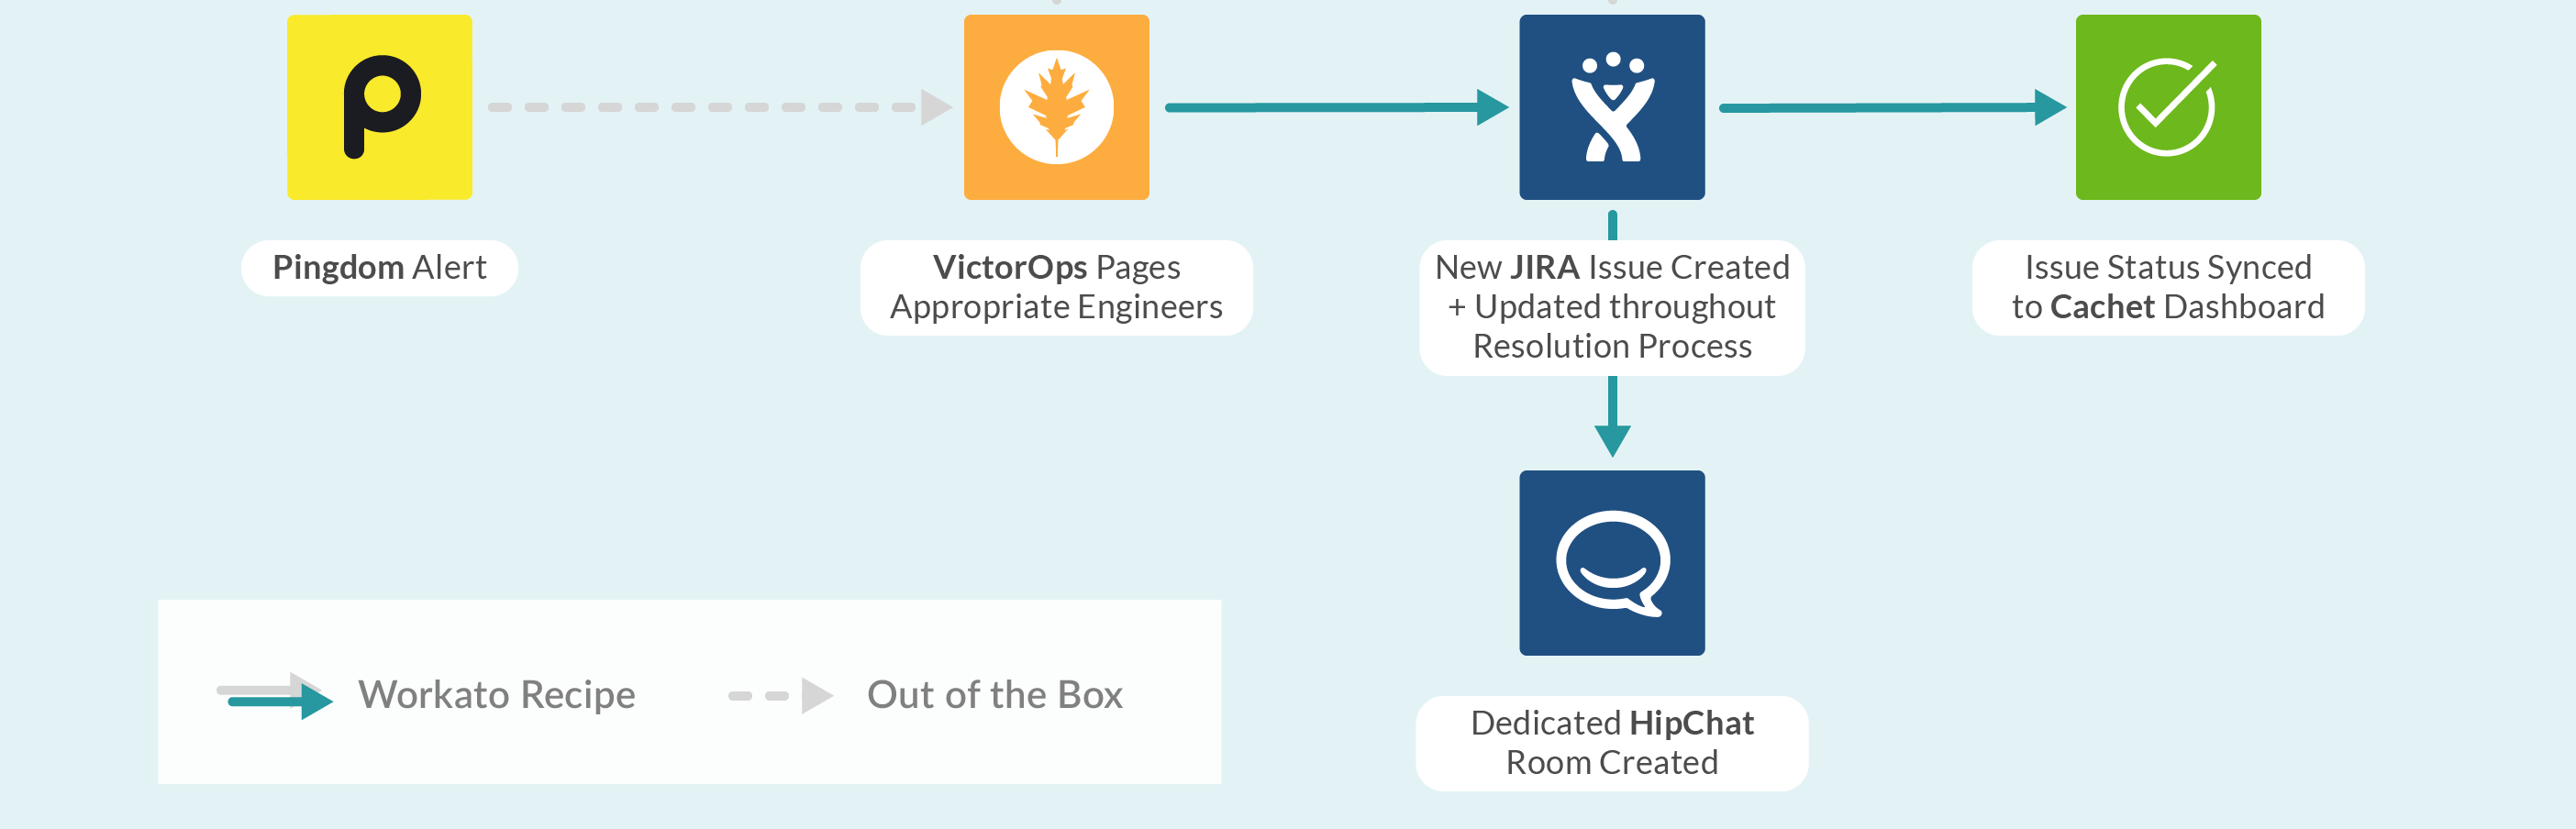 Coupa Incident Updates Workflow